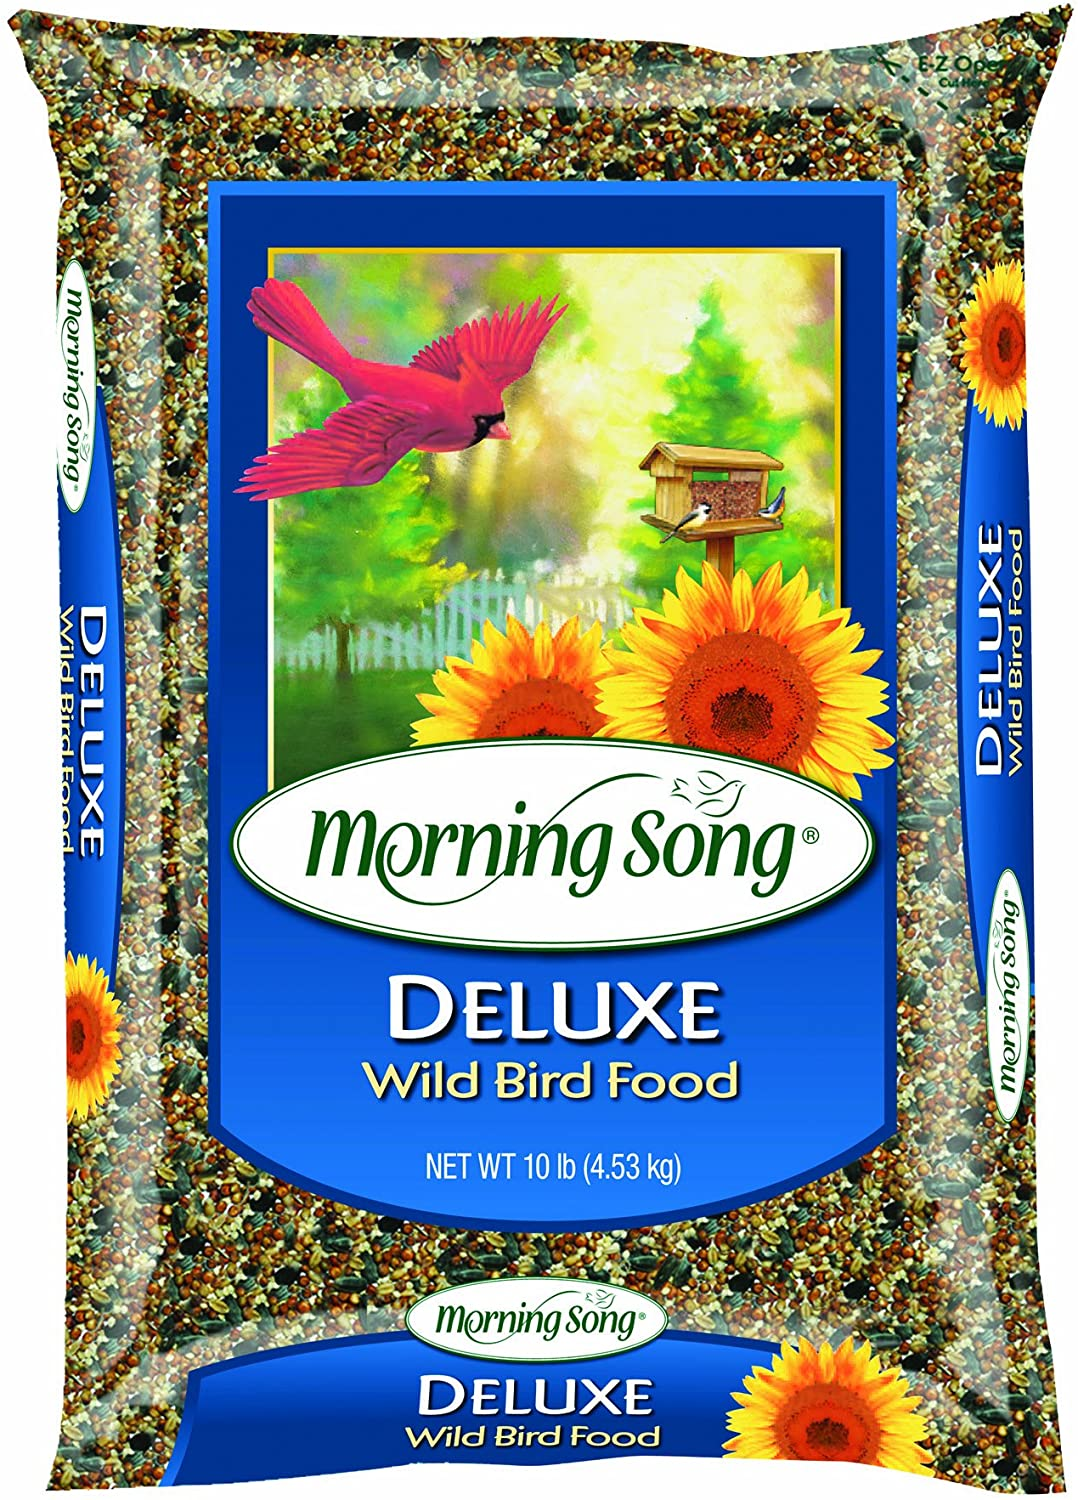 Morning Song 1022046 Deluxe Wild Bird Food Bag, 20-Pound